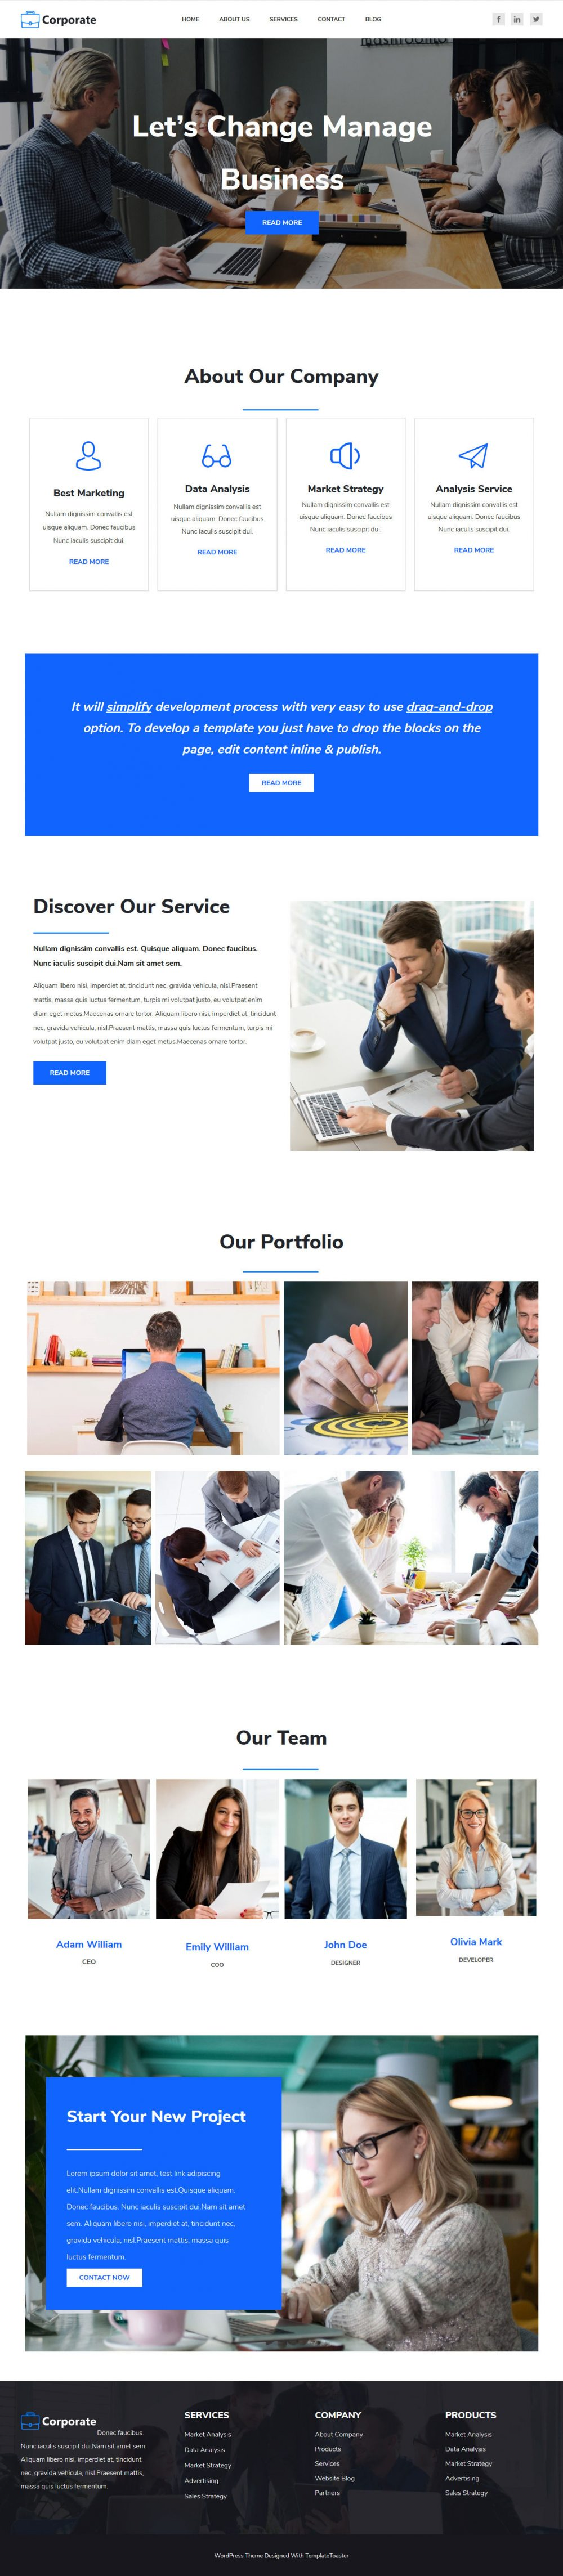 Corporate Business and Finance HTML Template